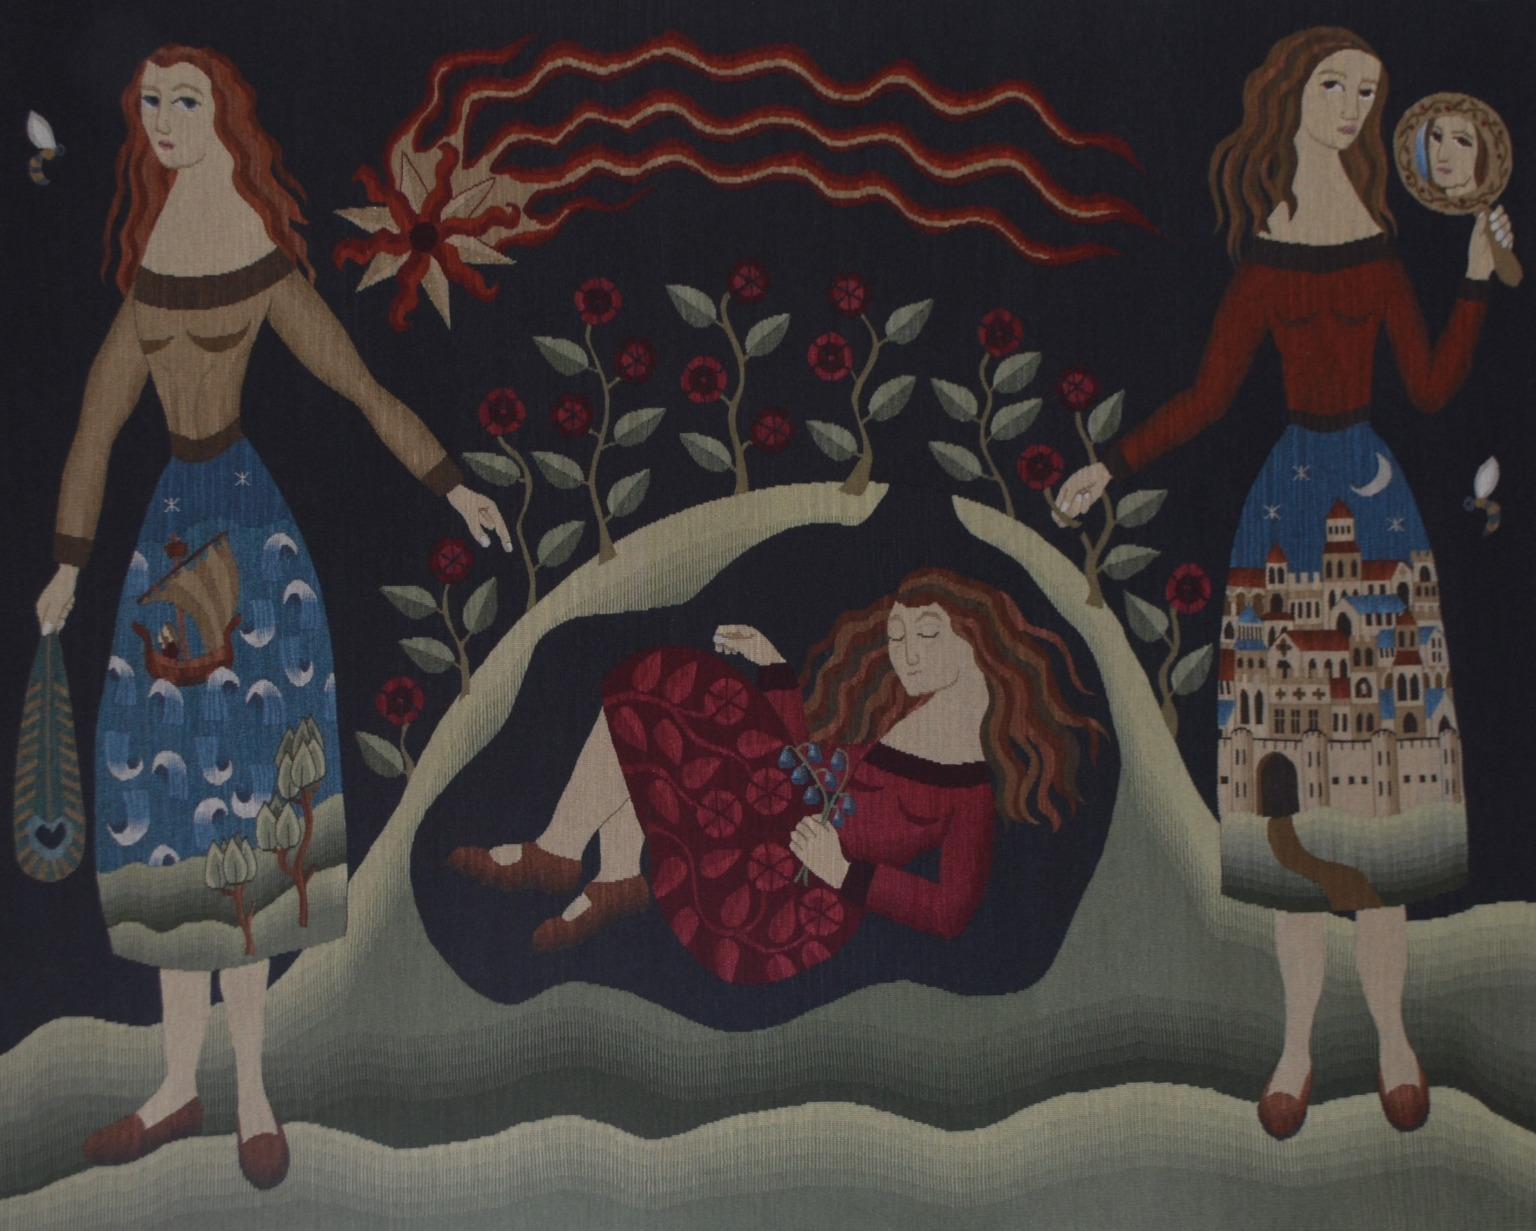 Textile showing two women standing either side of a bulging piece of flower-covered ground, inside which is a woman in a foetal position.